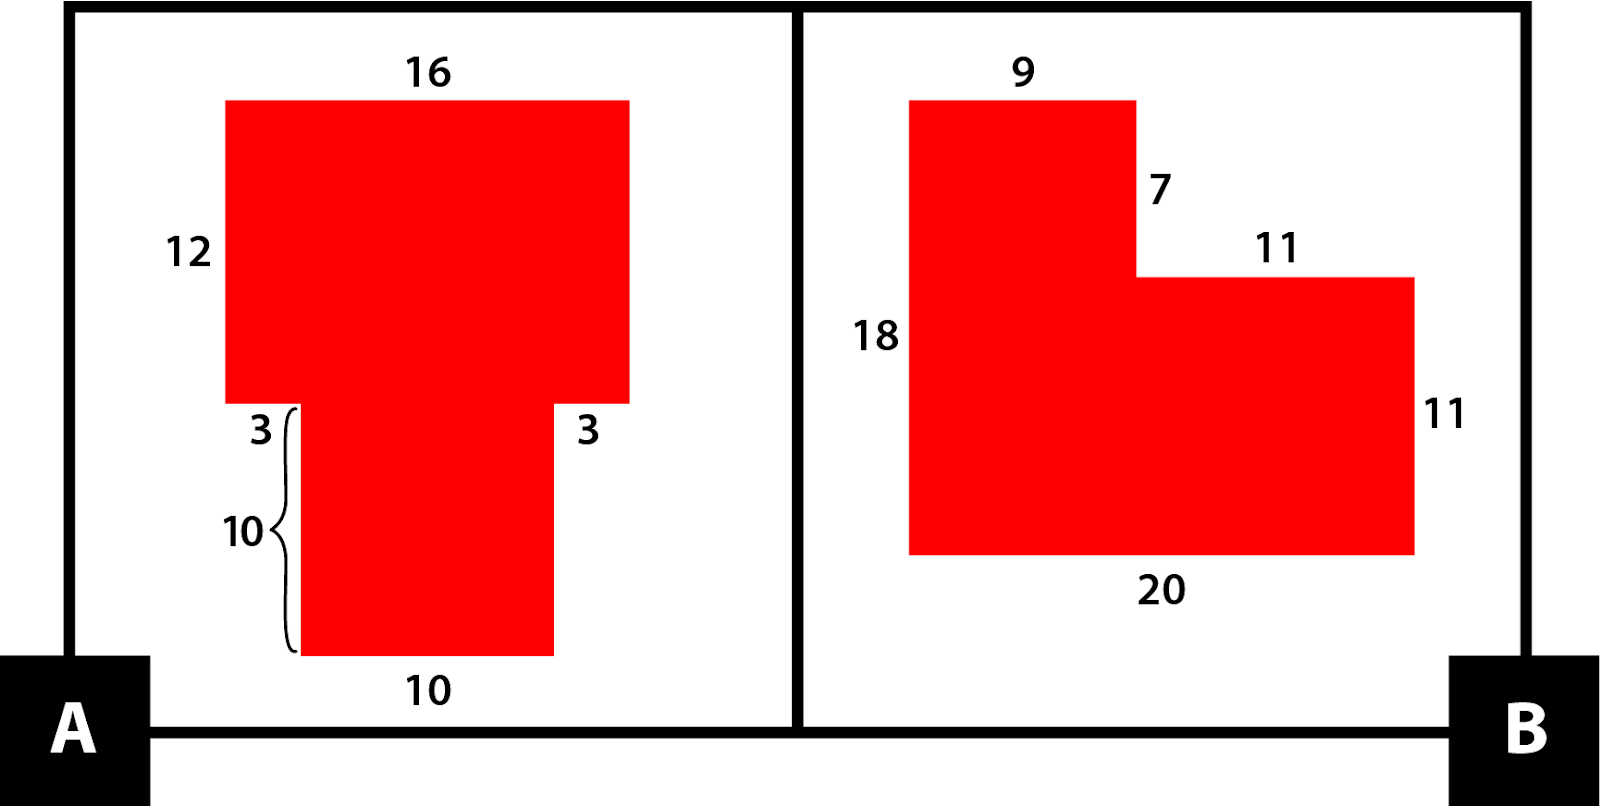 A: An 8-sided figure made from 2 quadrilaterals. The top part is 12 by 16. The bottom part is 10 by 10. The dimensions are 16, 12, 3, 10, 10, 10, 3, and 12. B: A 6-sided figure made from 2 quadrilaterals. The left part is 9 by 18. The right part is 11 by 11. The dimensions are 9, 7, 11, 11, 20, and 18.